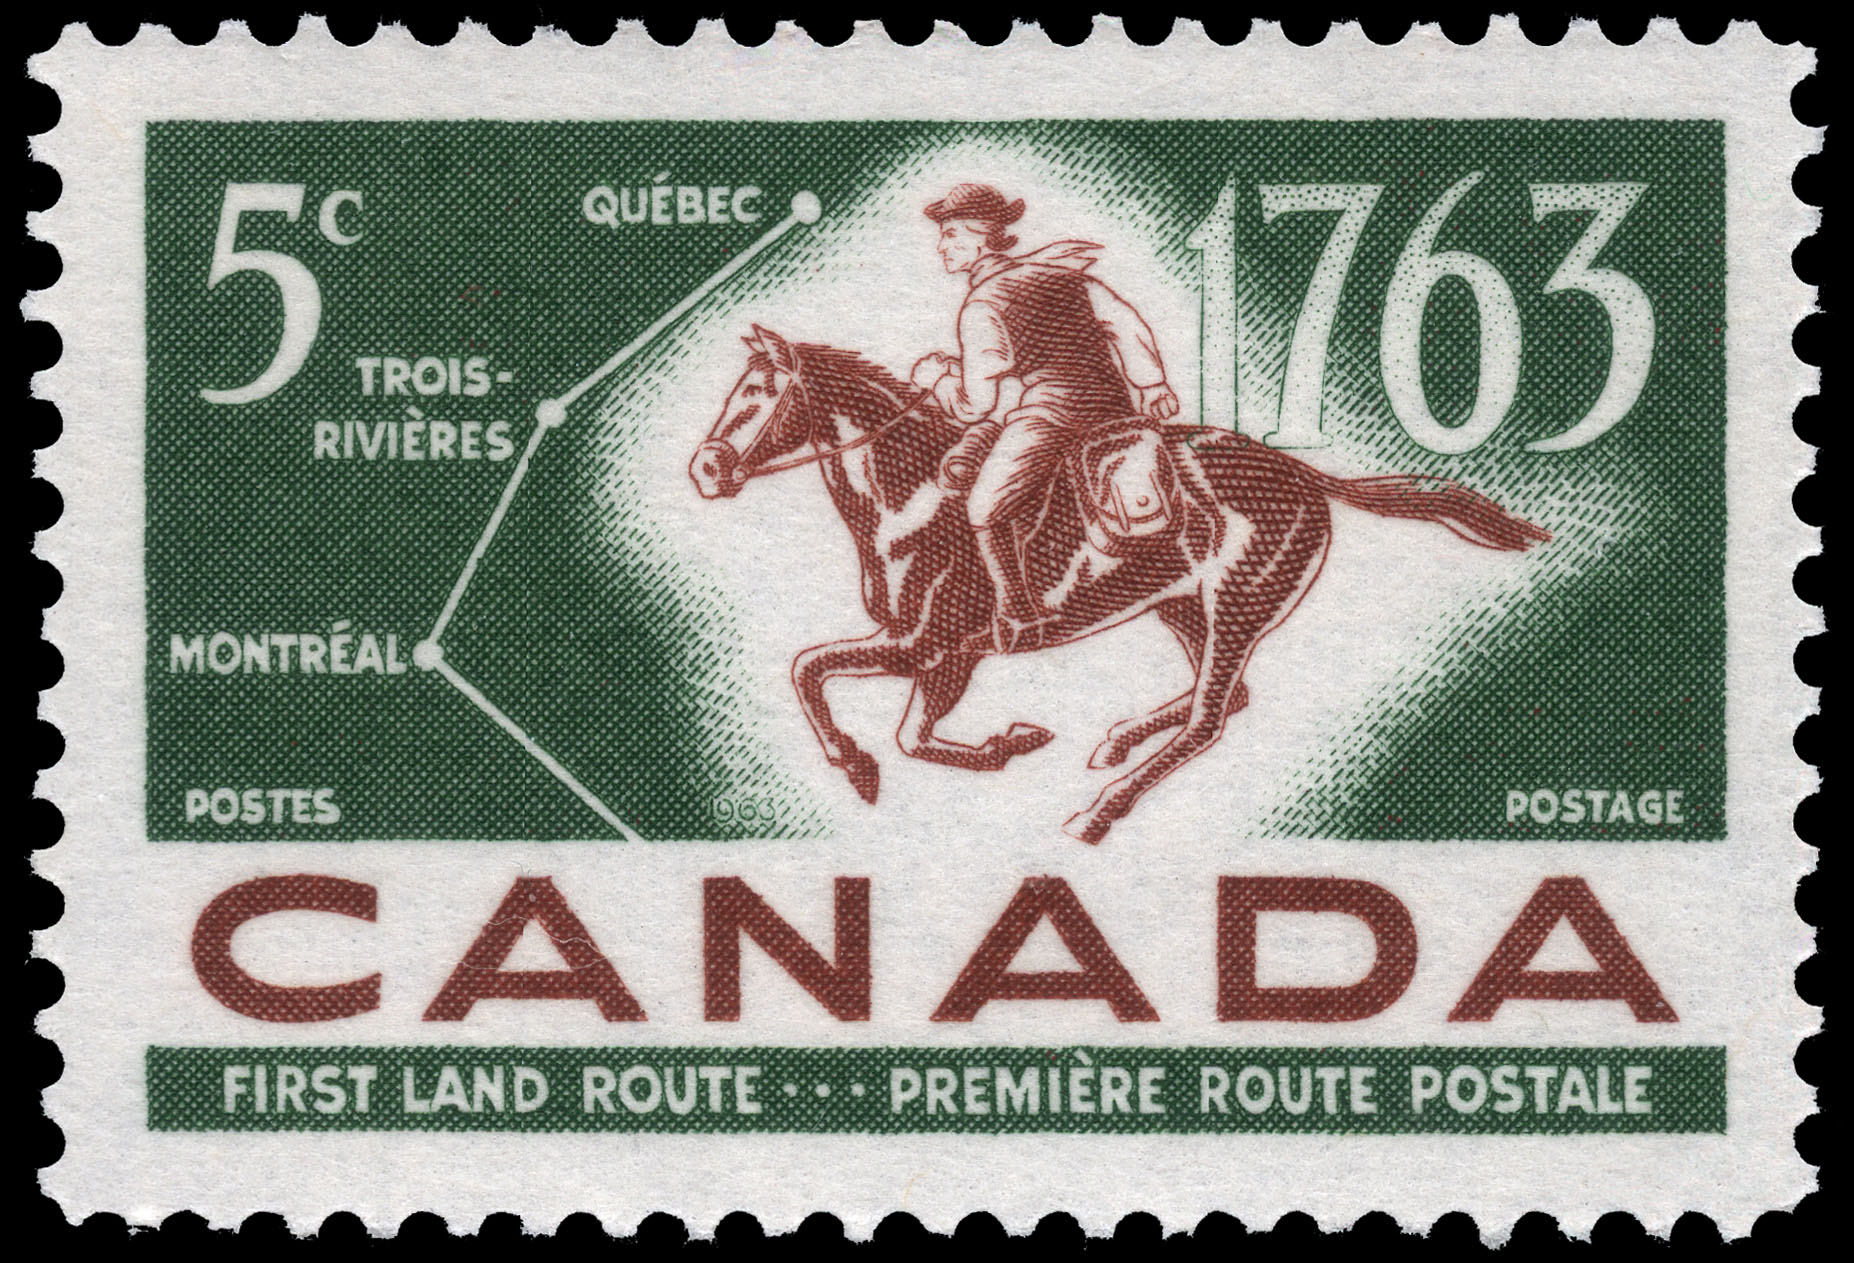 First Land Route, 1763 Canada Postage Stamp